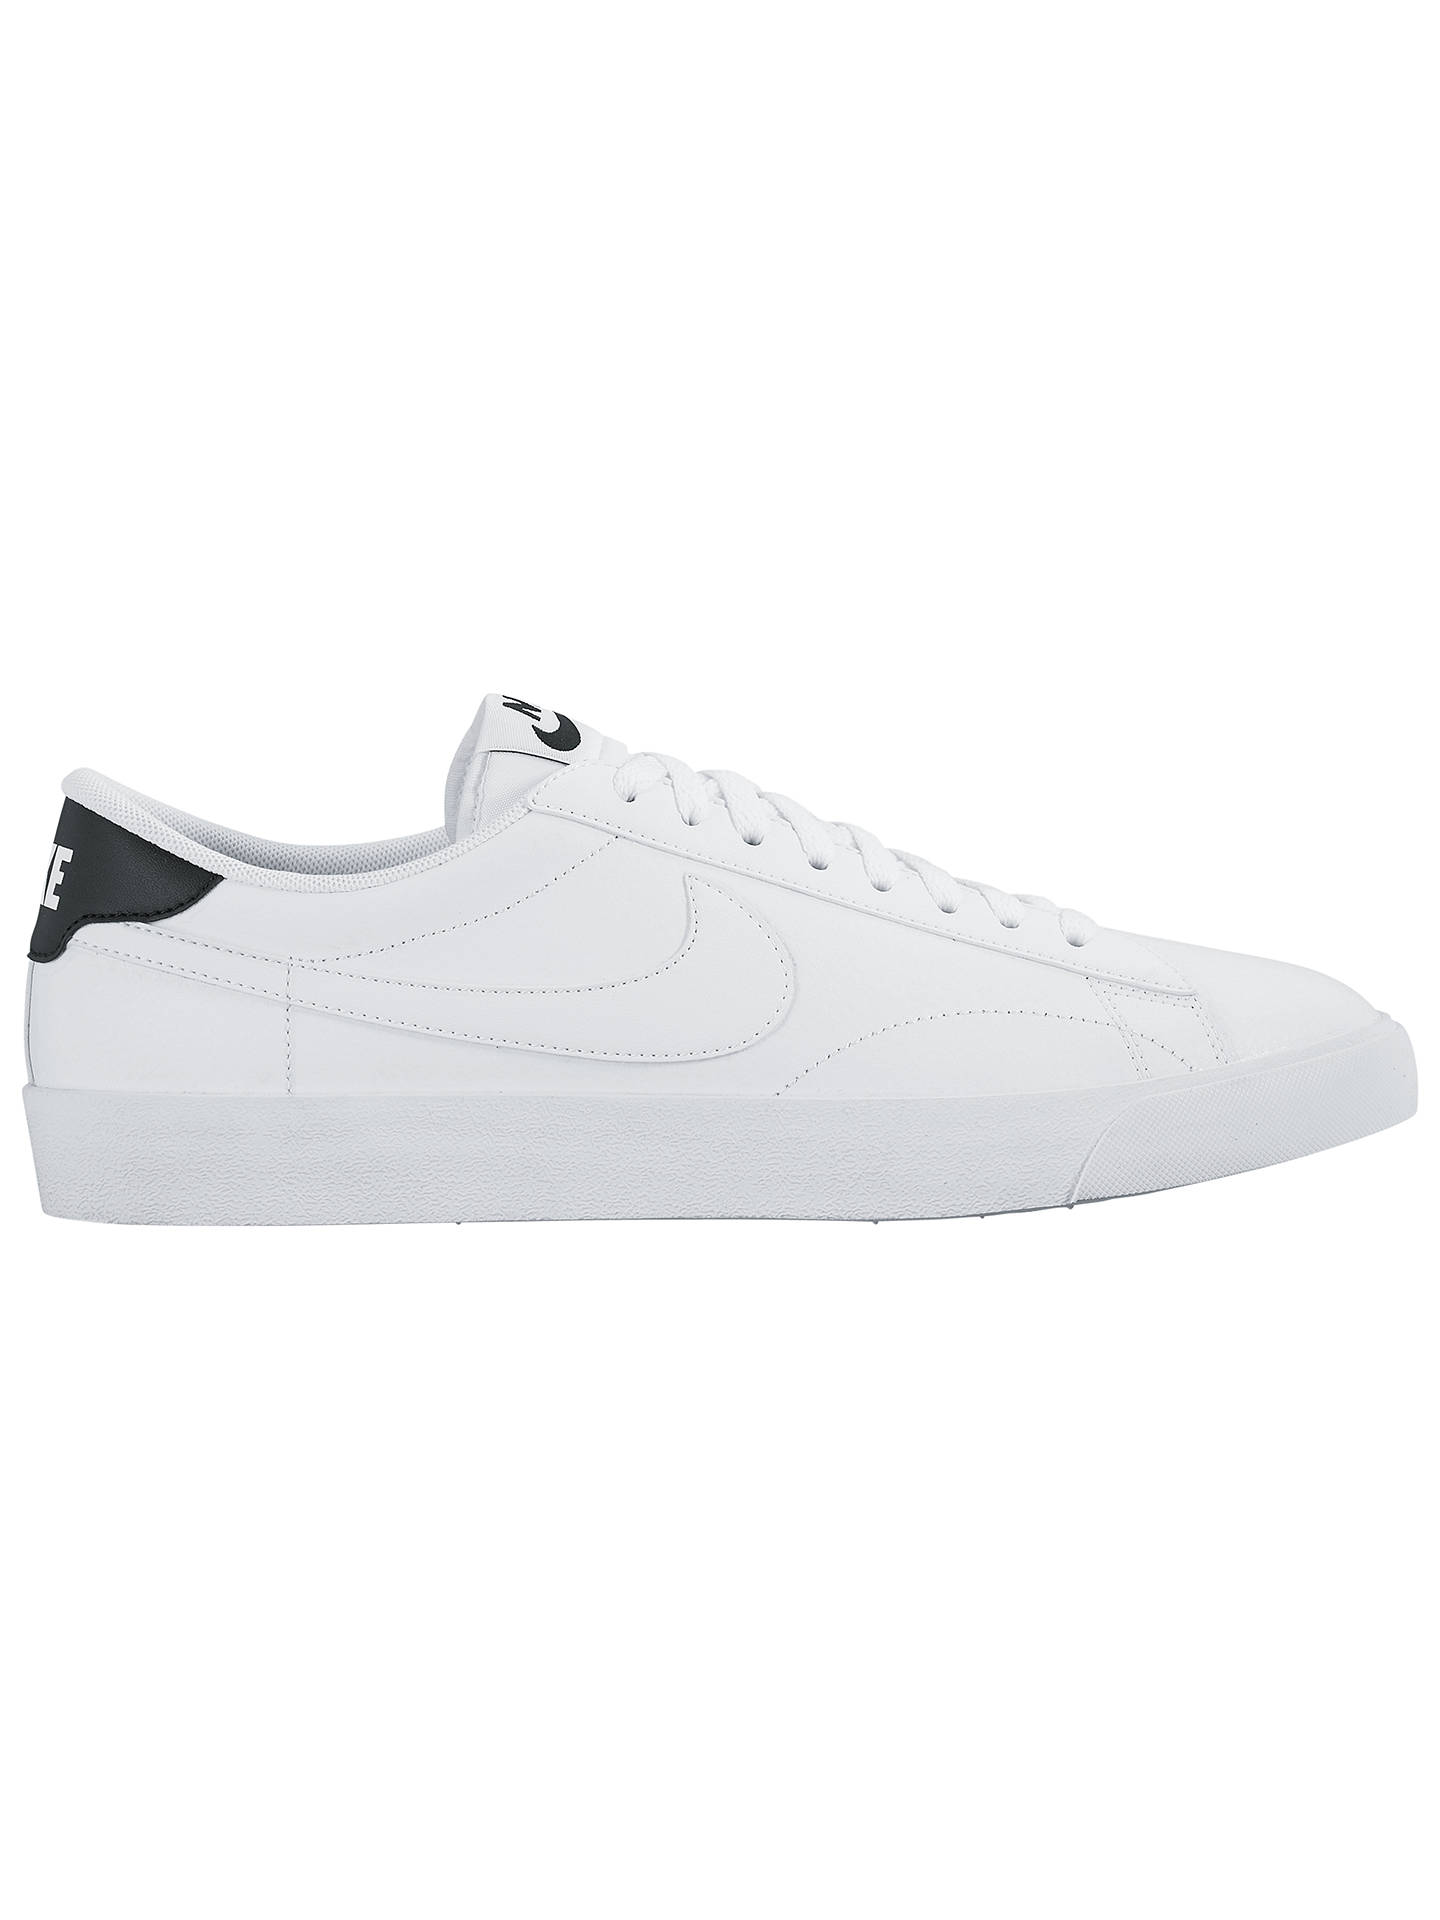 best service 499c1 2f3ae Buy Nike Tennis Classic AC ND Men s Trainers, White Black, 7 Online at ...